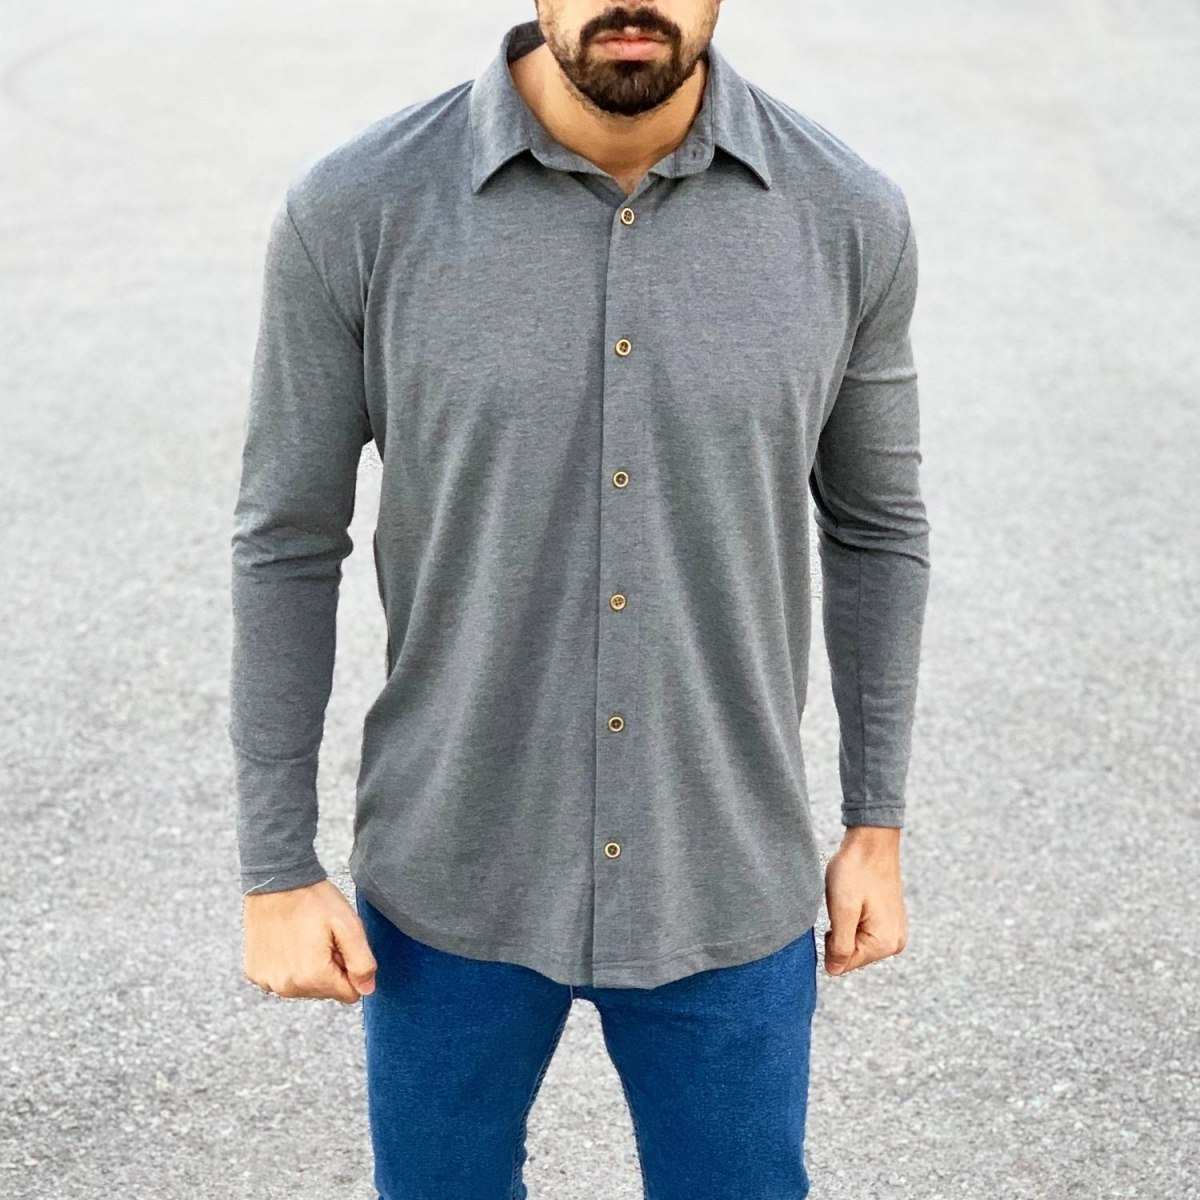 Slim-Fit Button-up Shirt in Grey Mv Premium Brand - 1